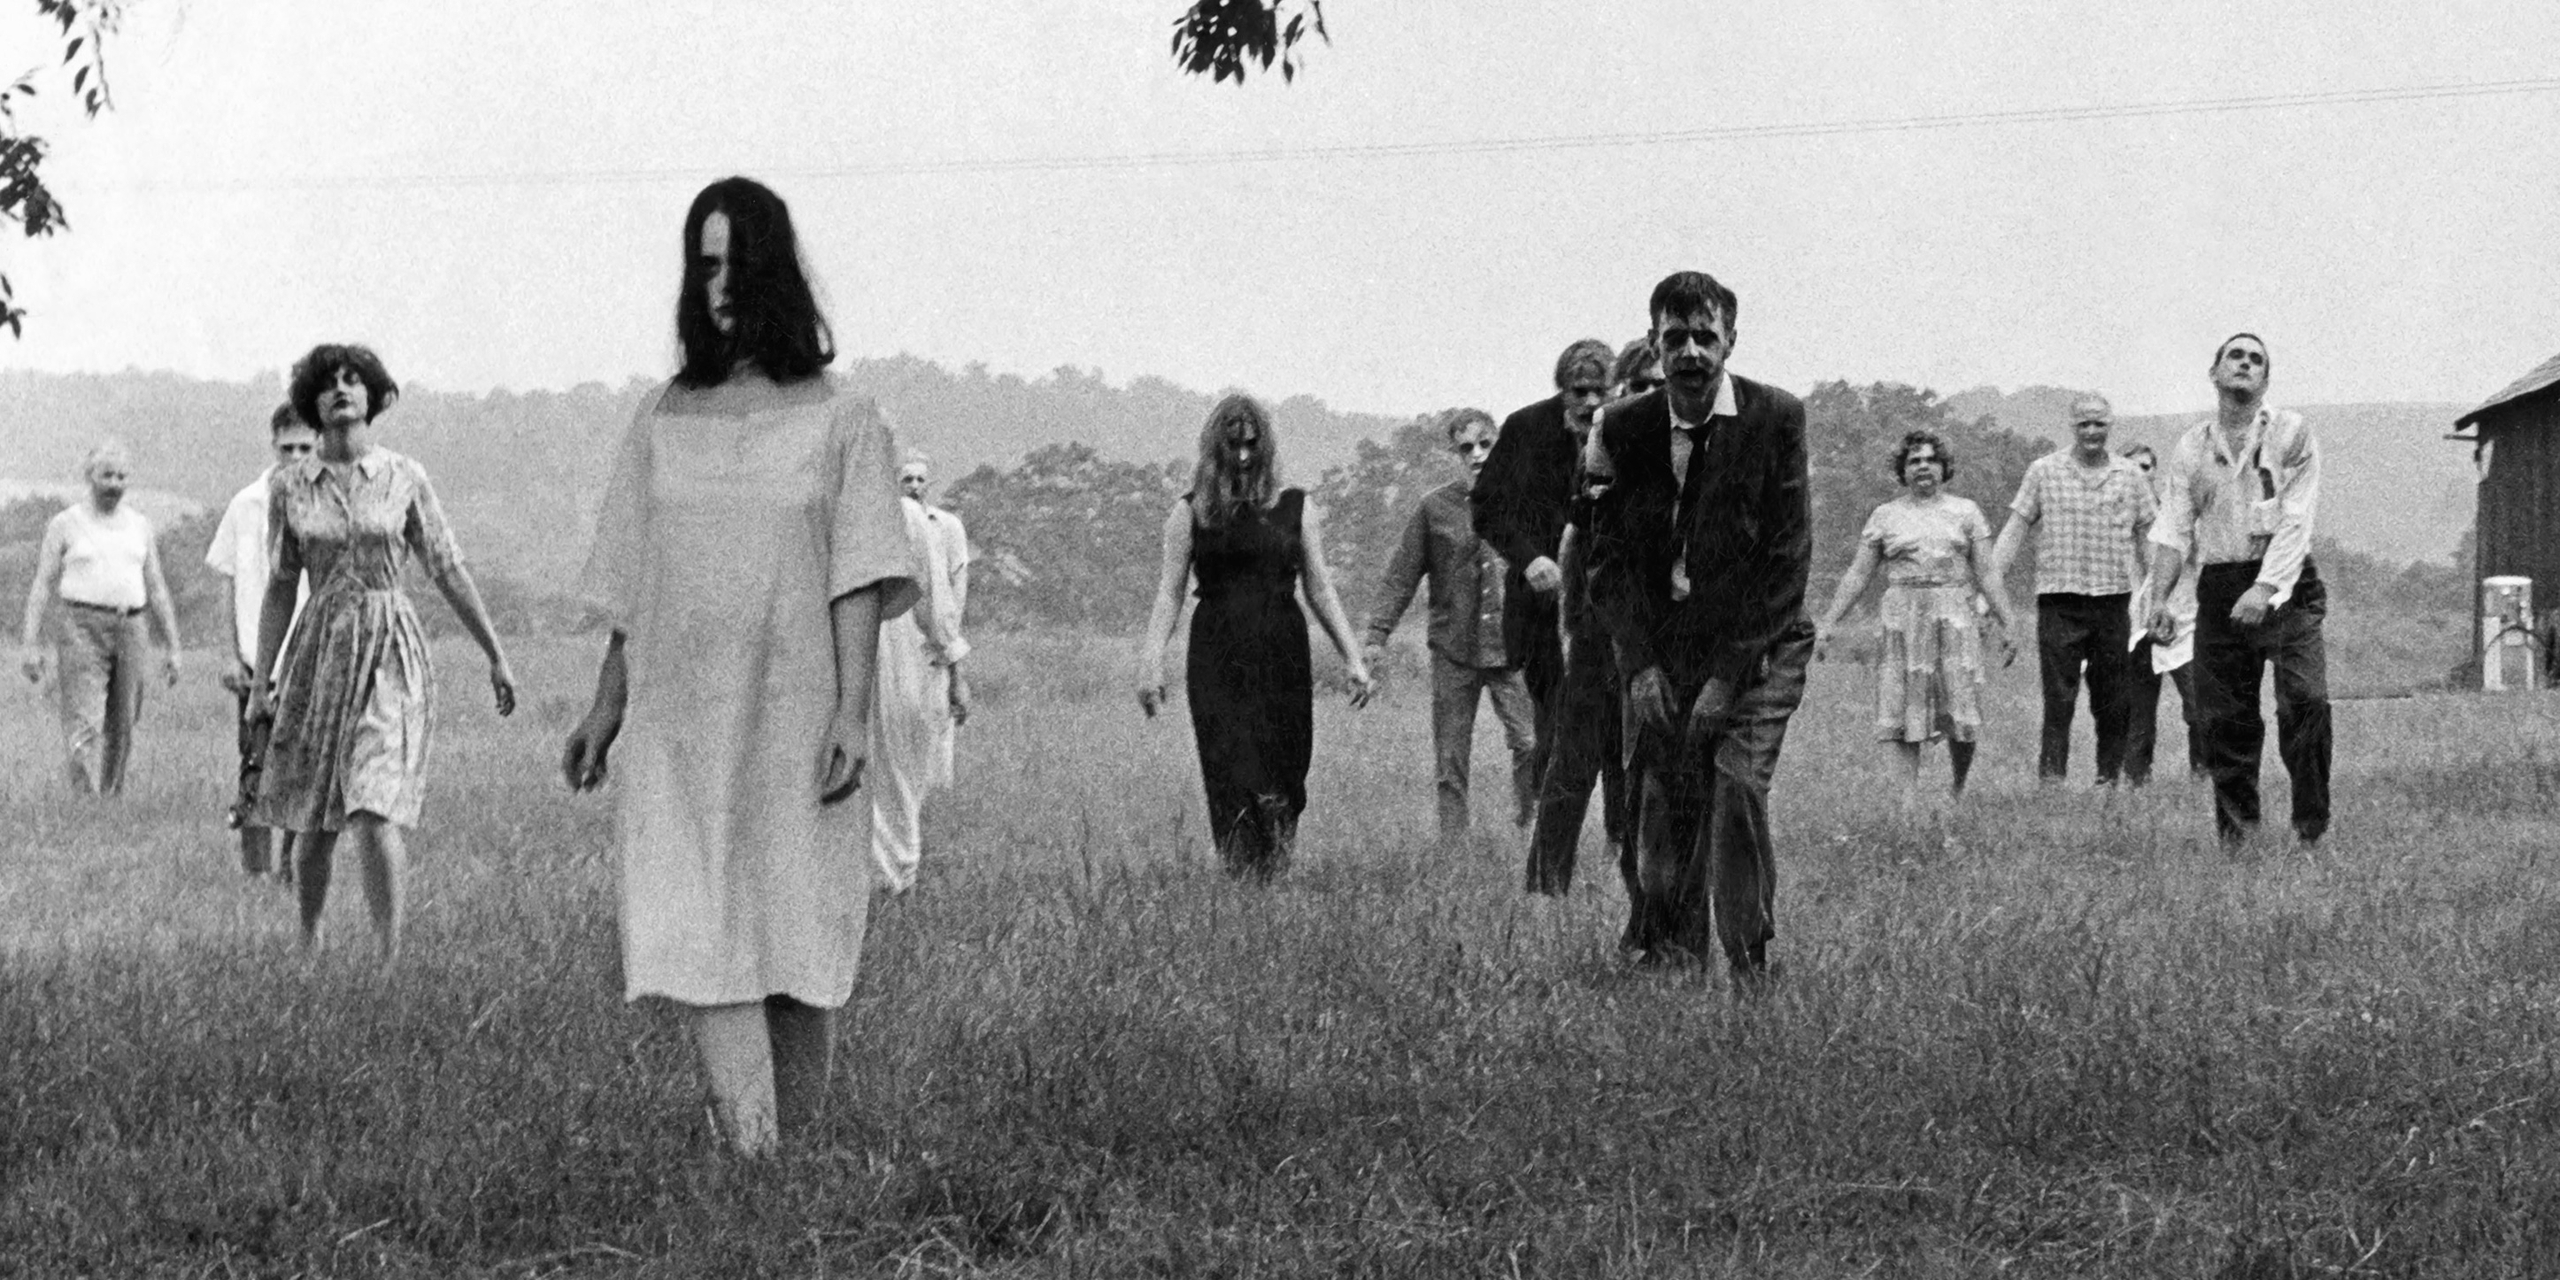 Still from Night of the Living Dead, USA 1968, directed by George A. Romero